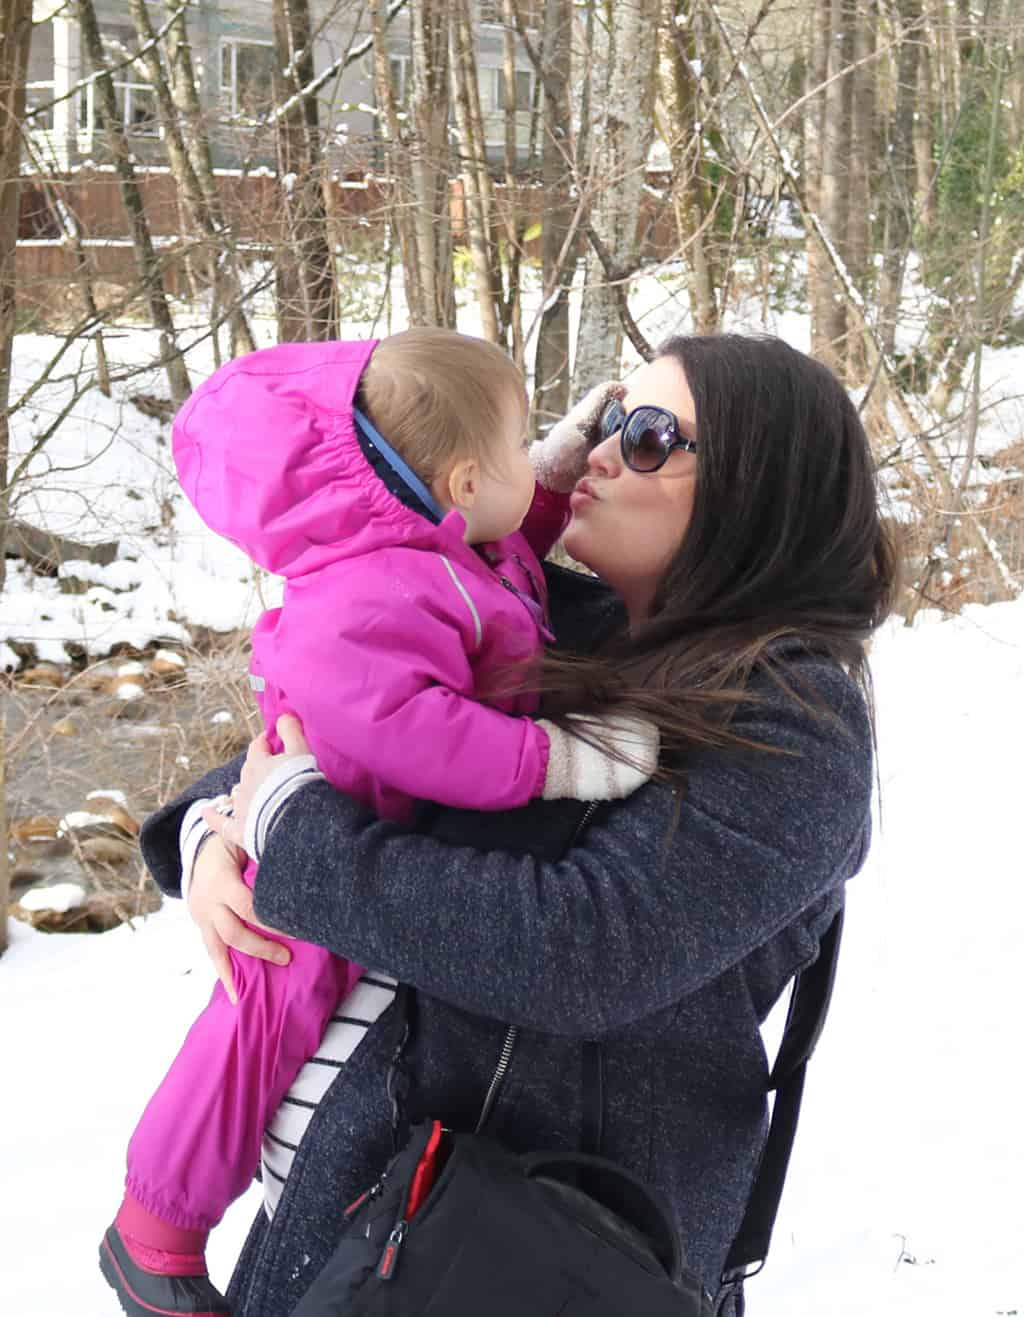 The honest truth about new mom loneliness